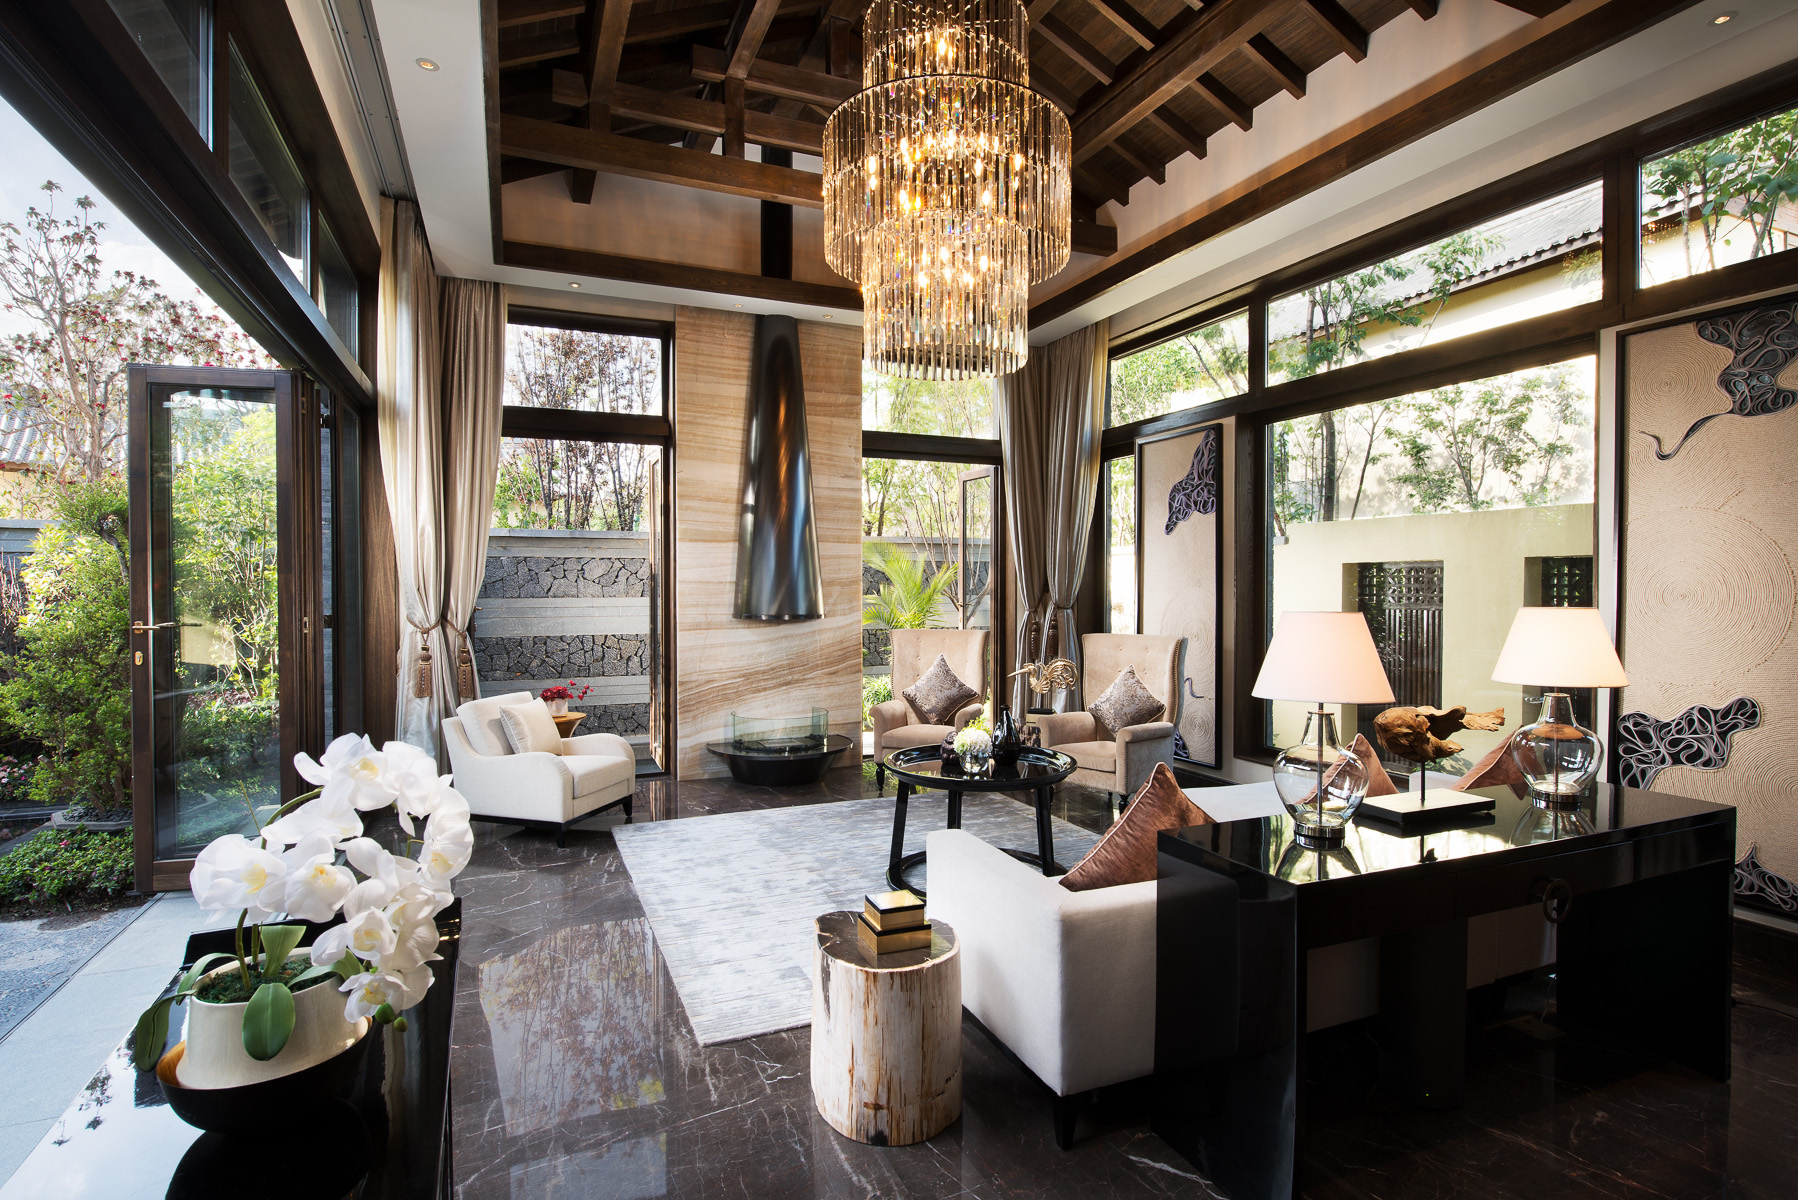 living room space traditional rooms uk interiors 内景 / exteriors 外景 — limelight studio ...